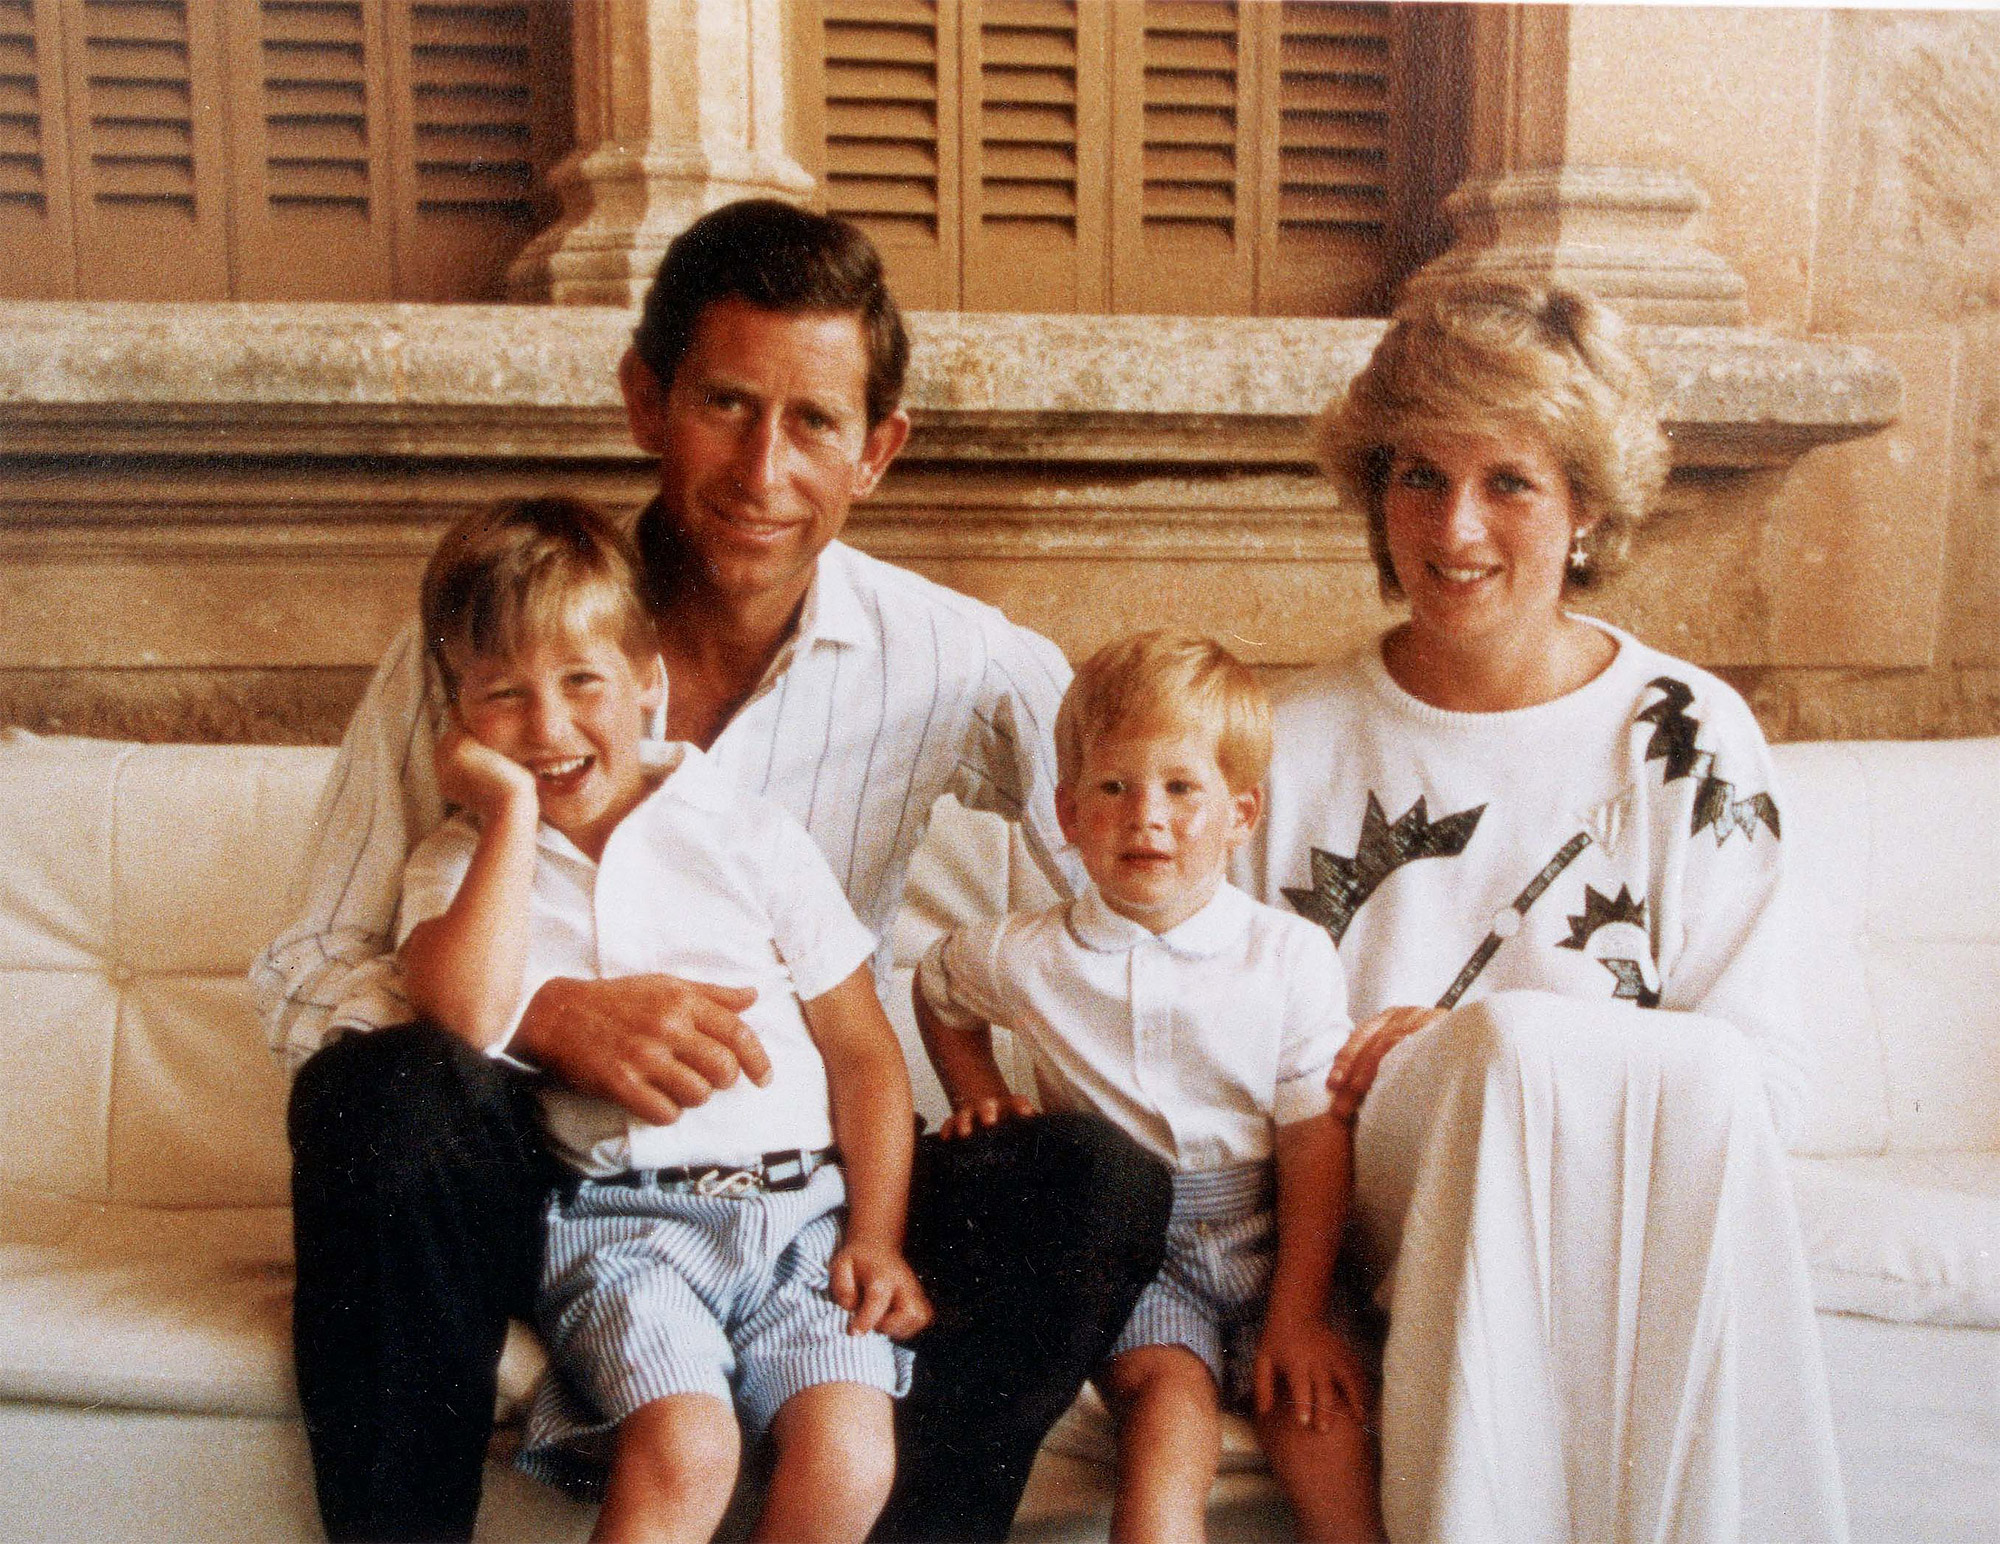 Christmas Card From The Prince And Princess Of Wales In 1987. The Picture Shows Prince Charles Princess Diana (diana Princess Of Wales Died August 1997) Prince William And Prince Harry On Holiday Together In Spain.